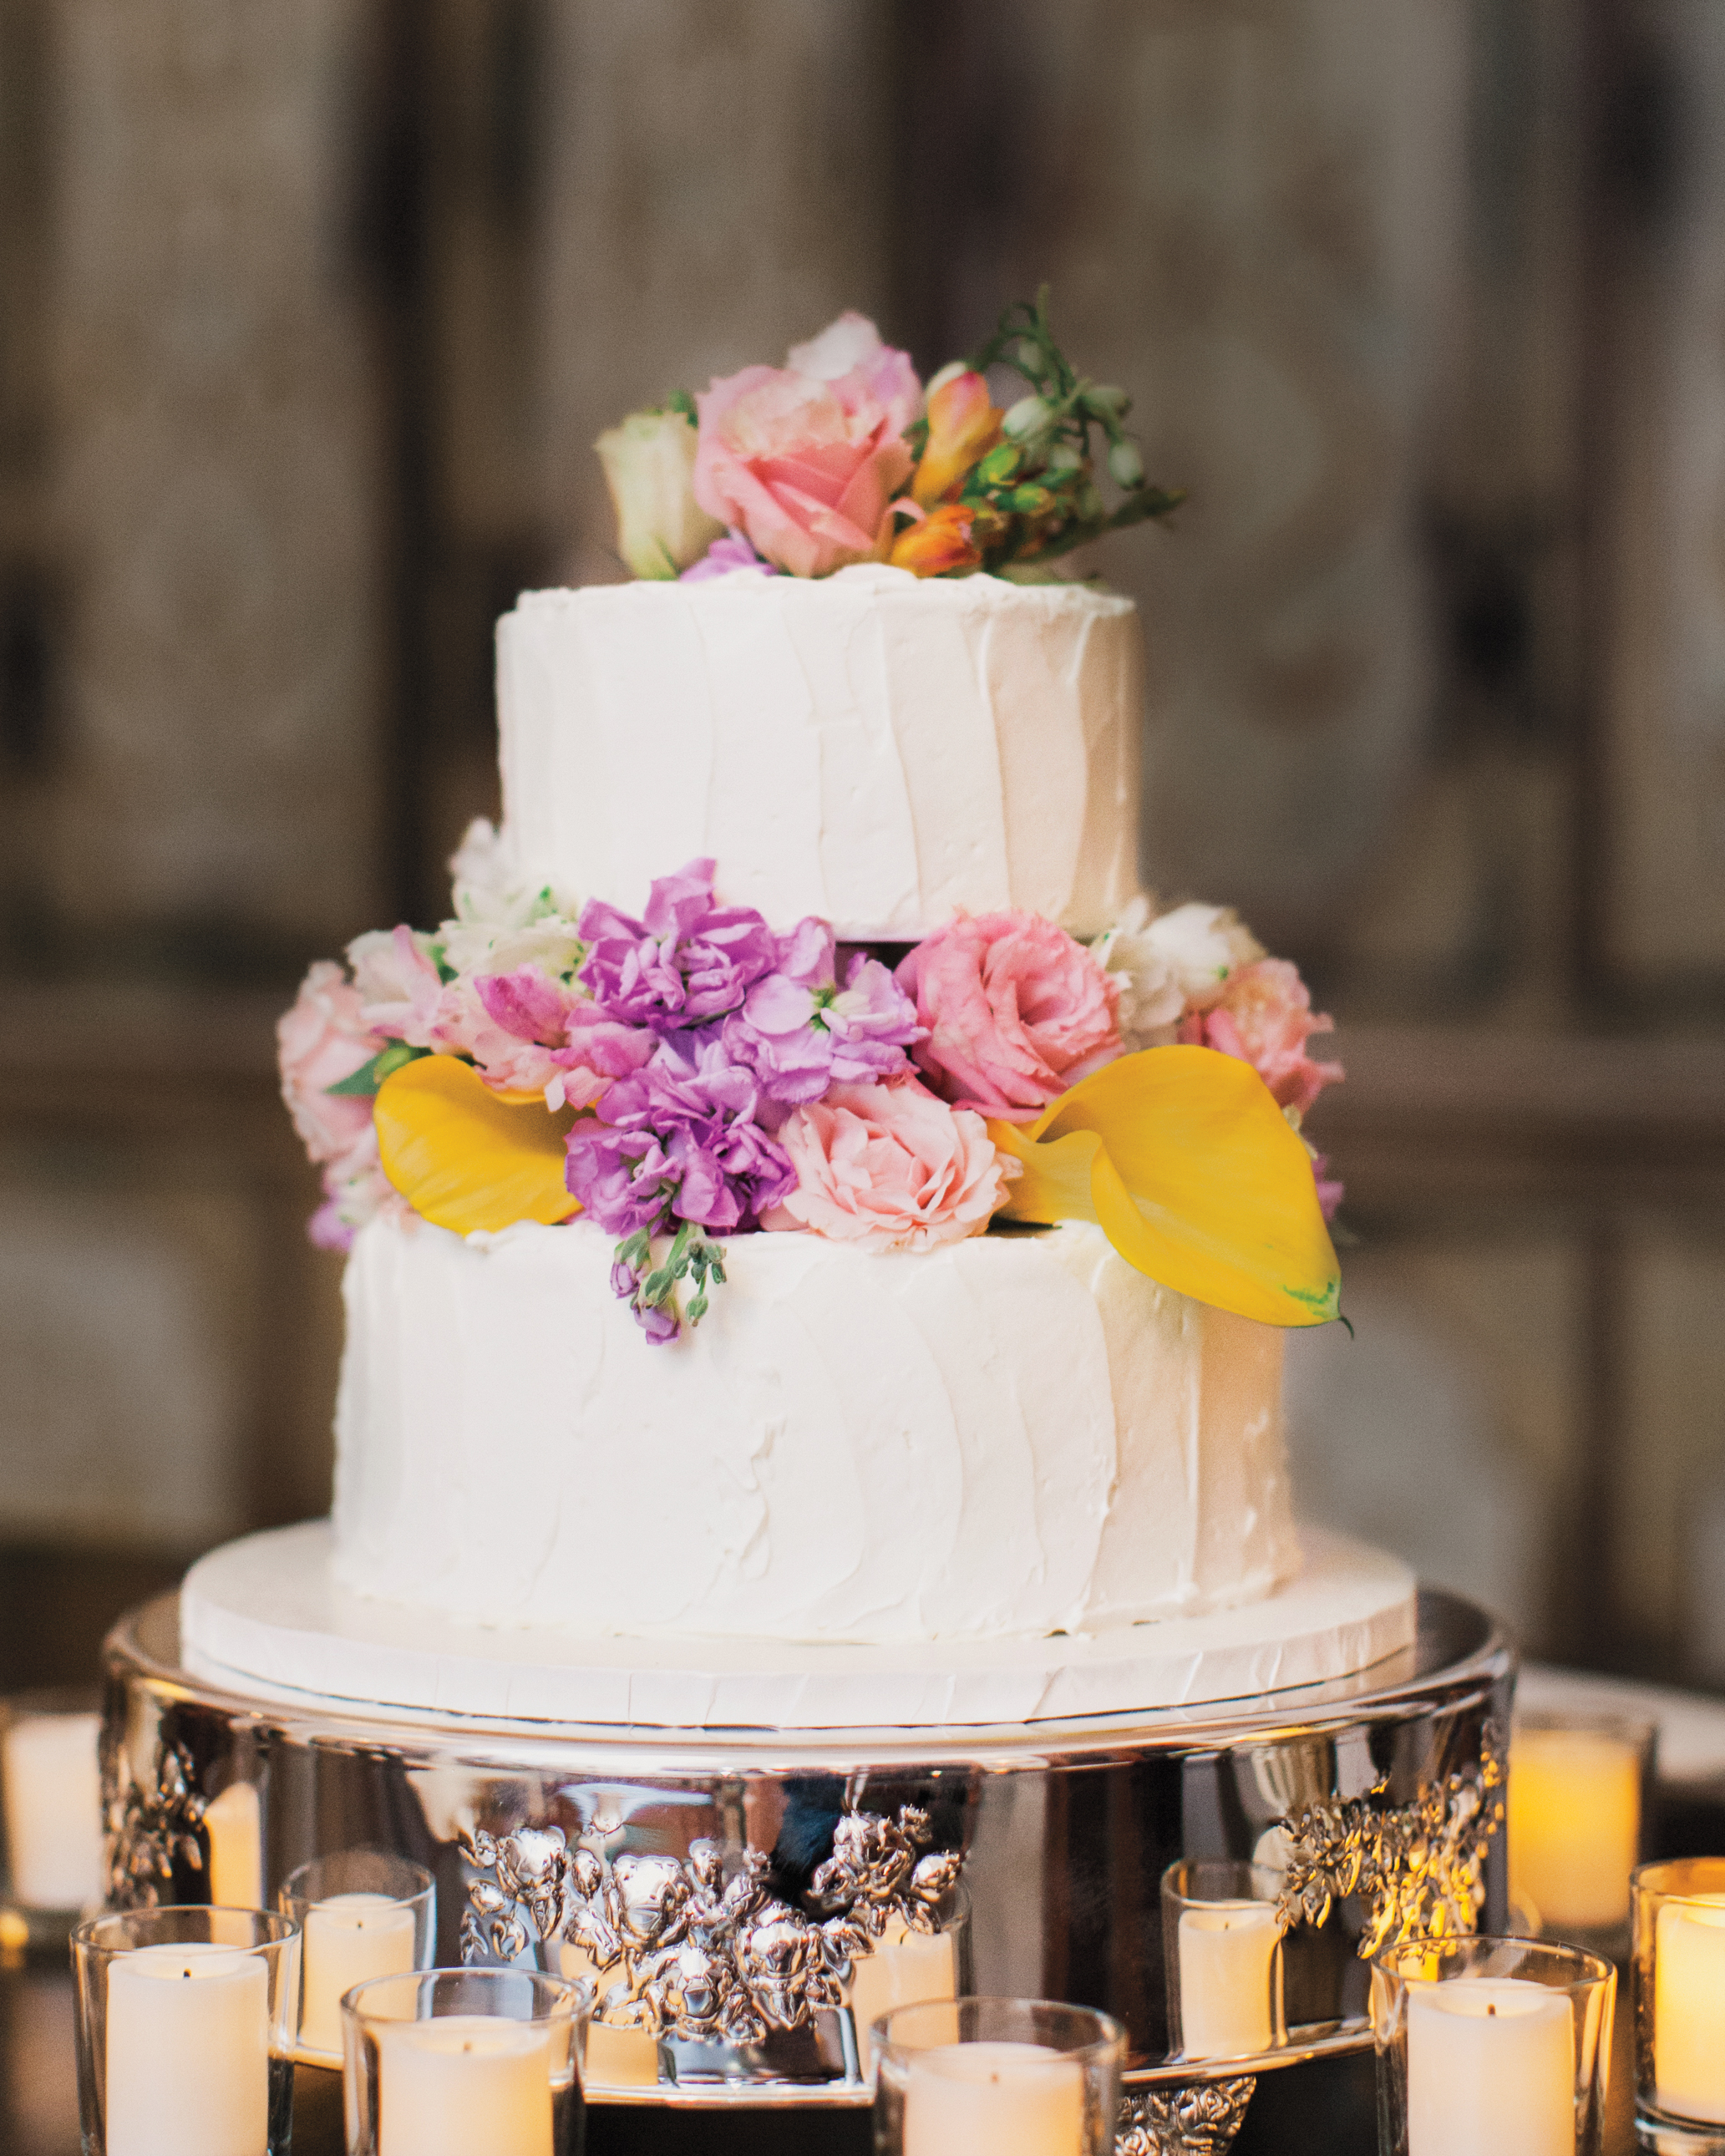 weddingcake-flowers-votivecandle-stjohnusvi-msw-3864-mwds110805.jpg